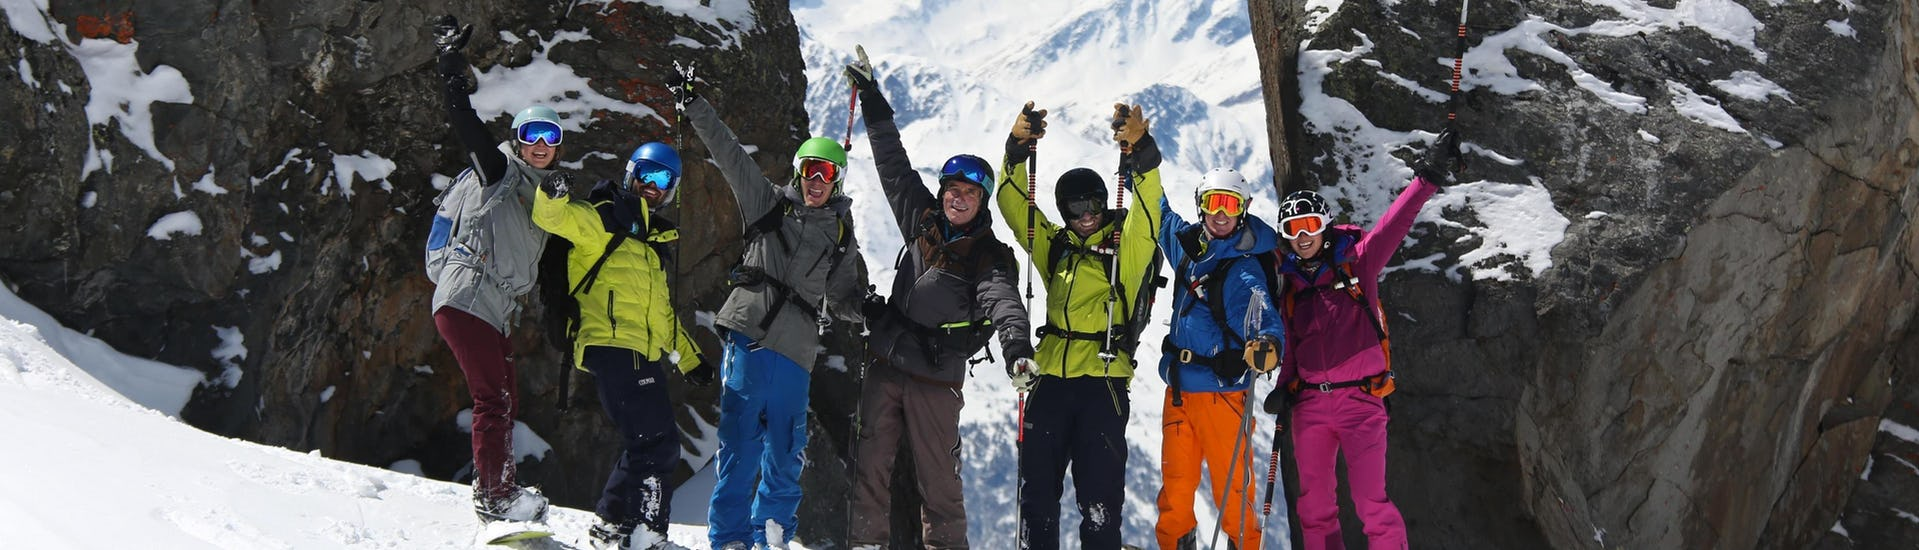 Winter sports enthusiasts are getting ready for the Off Piste Skiing Lessons for Adults - All Levels with their instructors from the school Prosneige Val d'Isère.